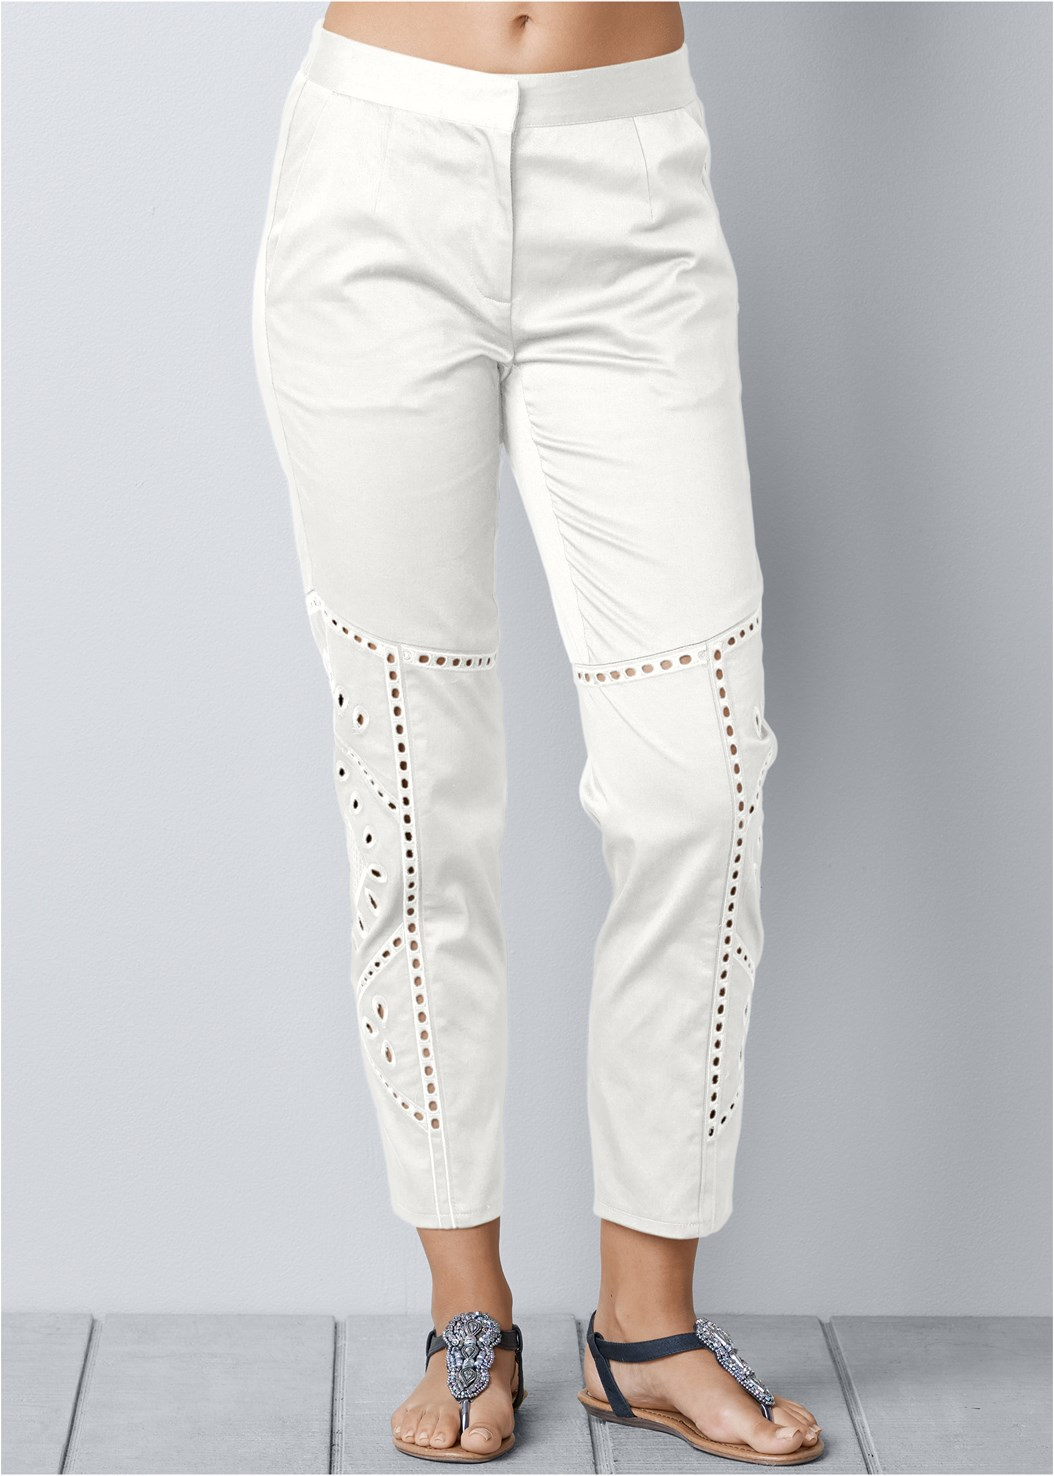 Eyelet Detail Pants,Back Detail Top